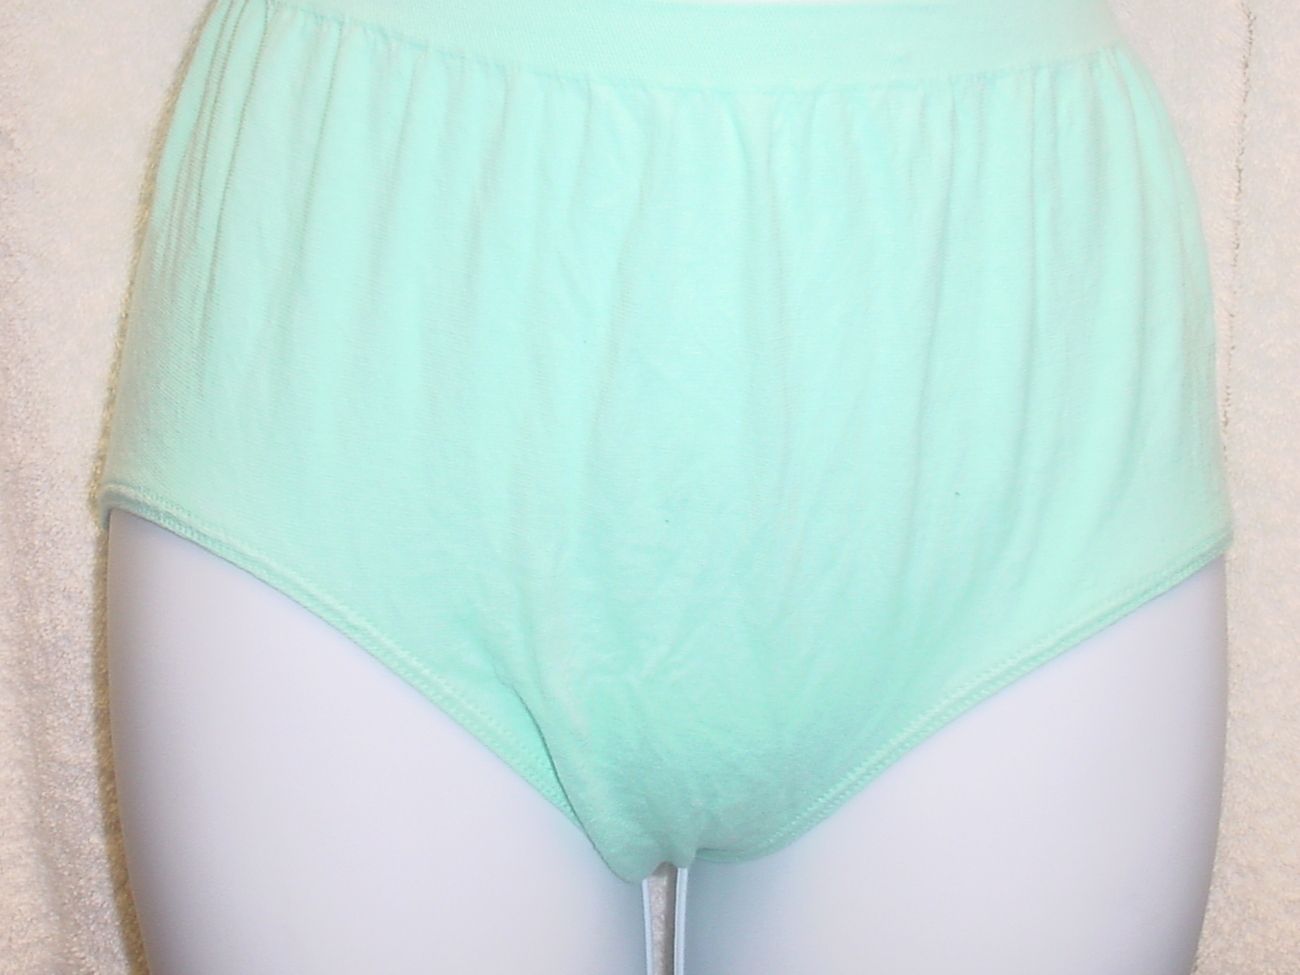 Jockey Seamfree Panty 7/Large Light Green SP-Slightly Imperfect Lot of 3 NWOT